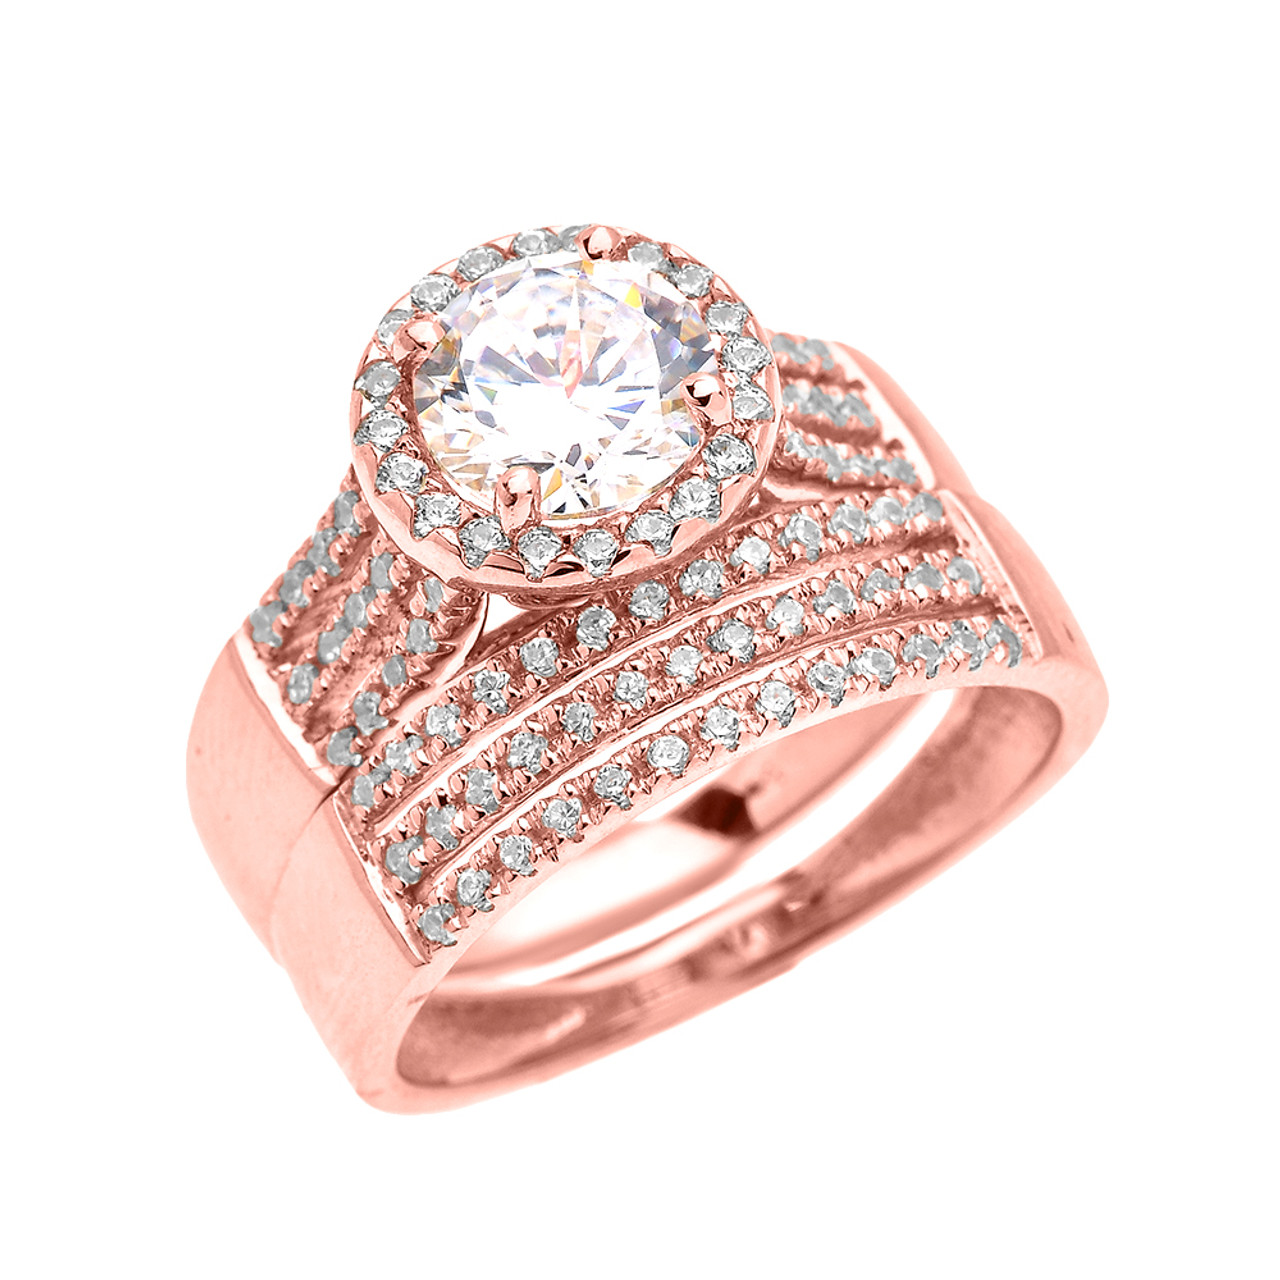 Jewelry & Watches 14ct Rose Gold Engagement Ring With Cz